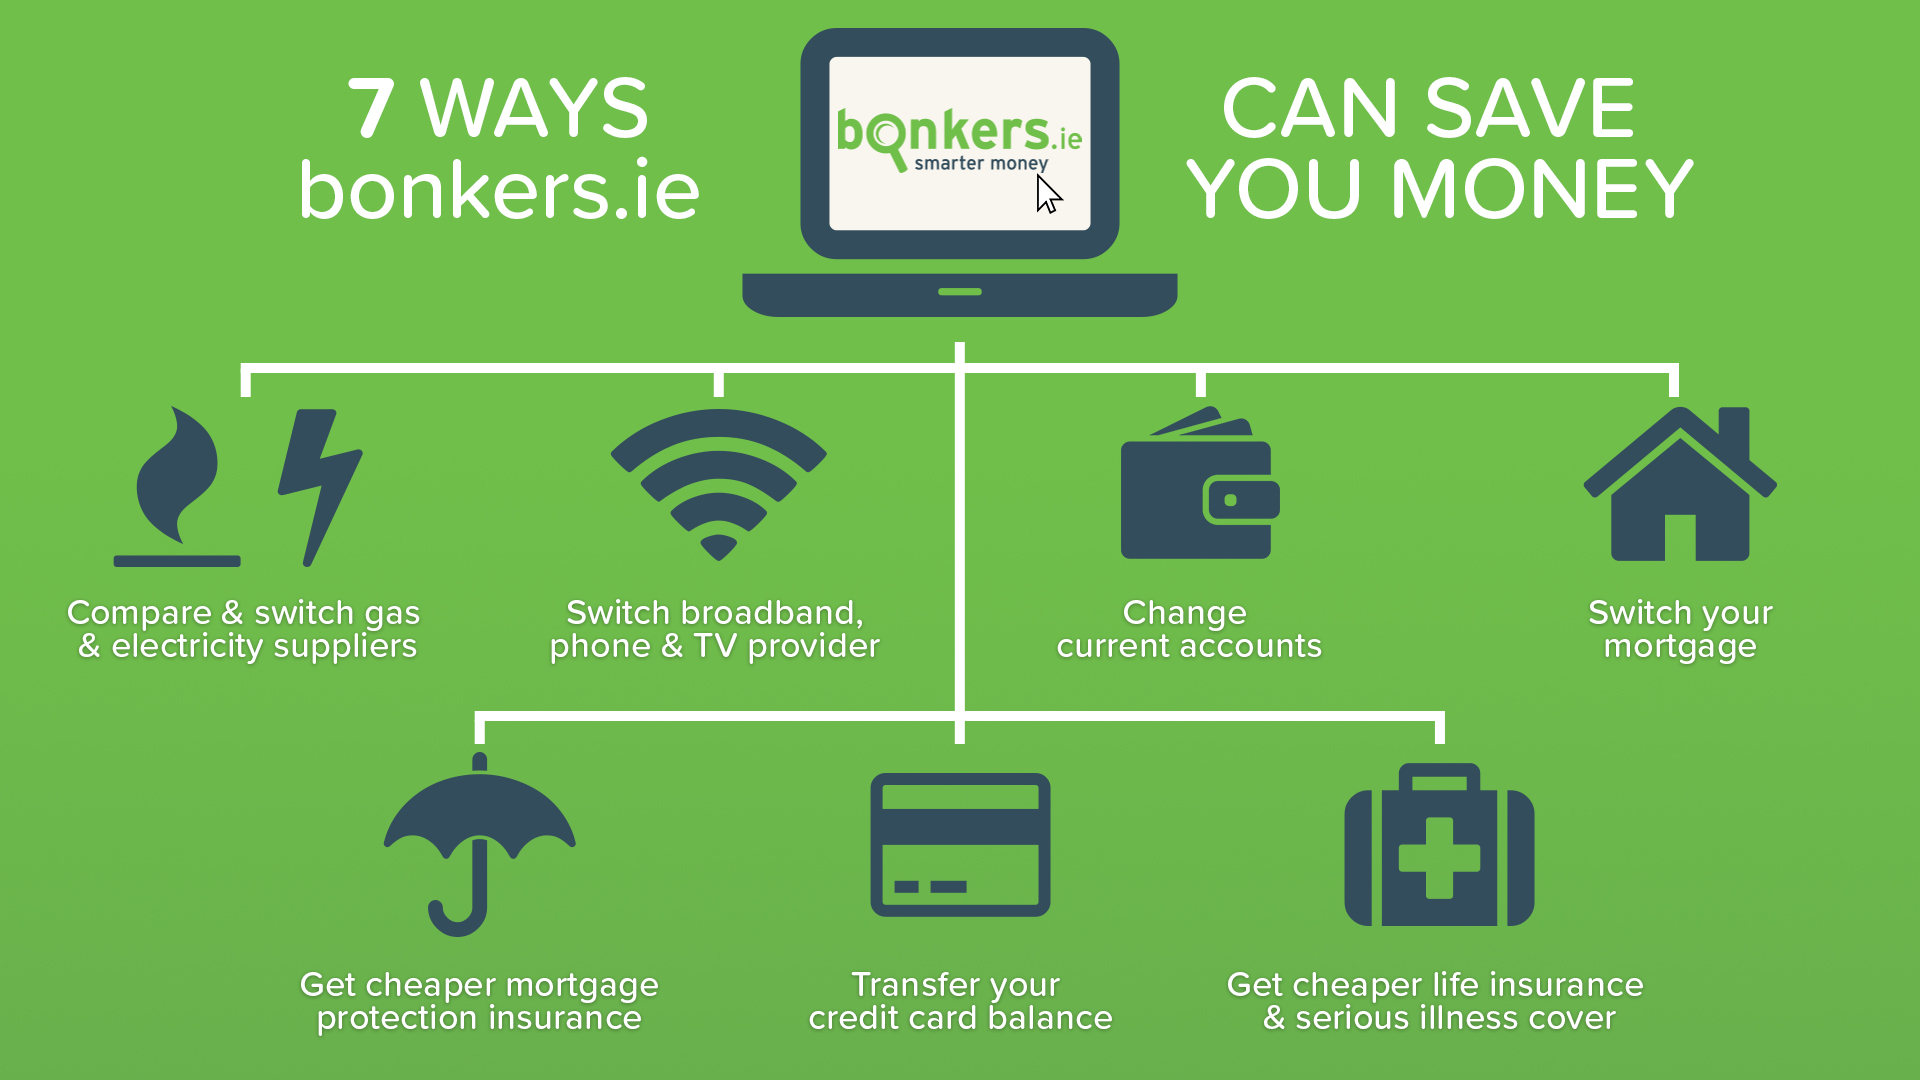 7 ways bonkers.ie can save you money on your bills